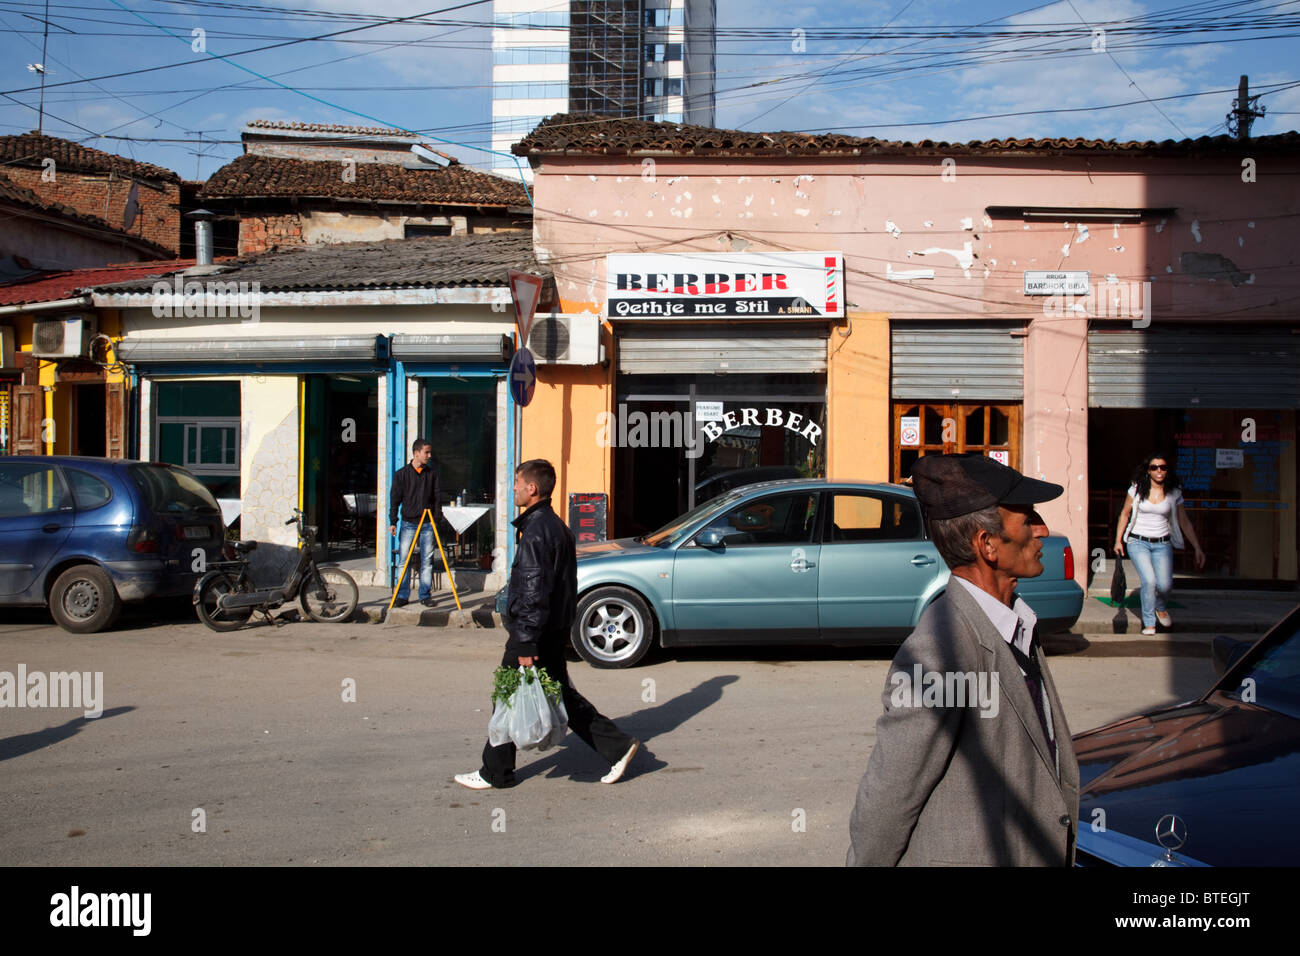 A street scene in Tirana, the capital of Albania. - Stock Image